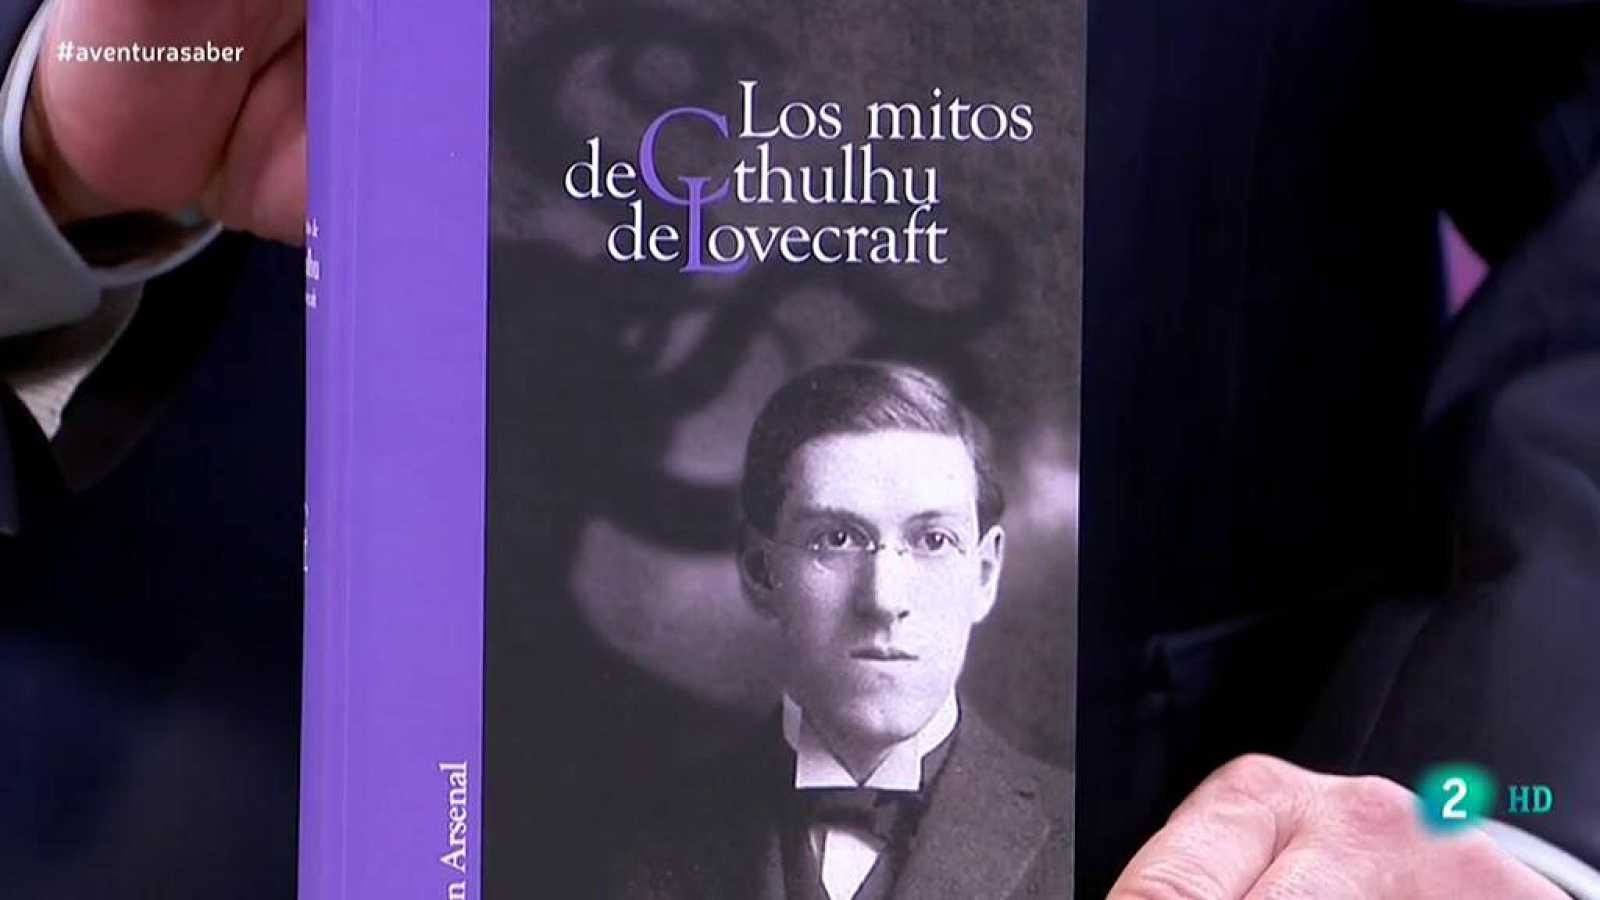 Los mitos de Cthulhu La aventura del saber Howard Phillips Lovecraft